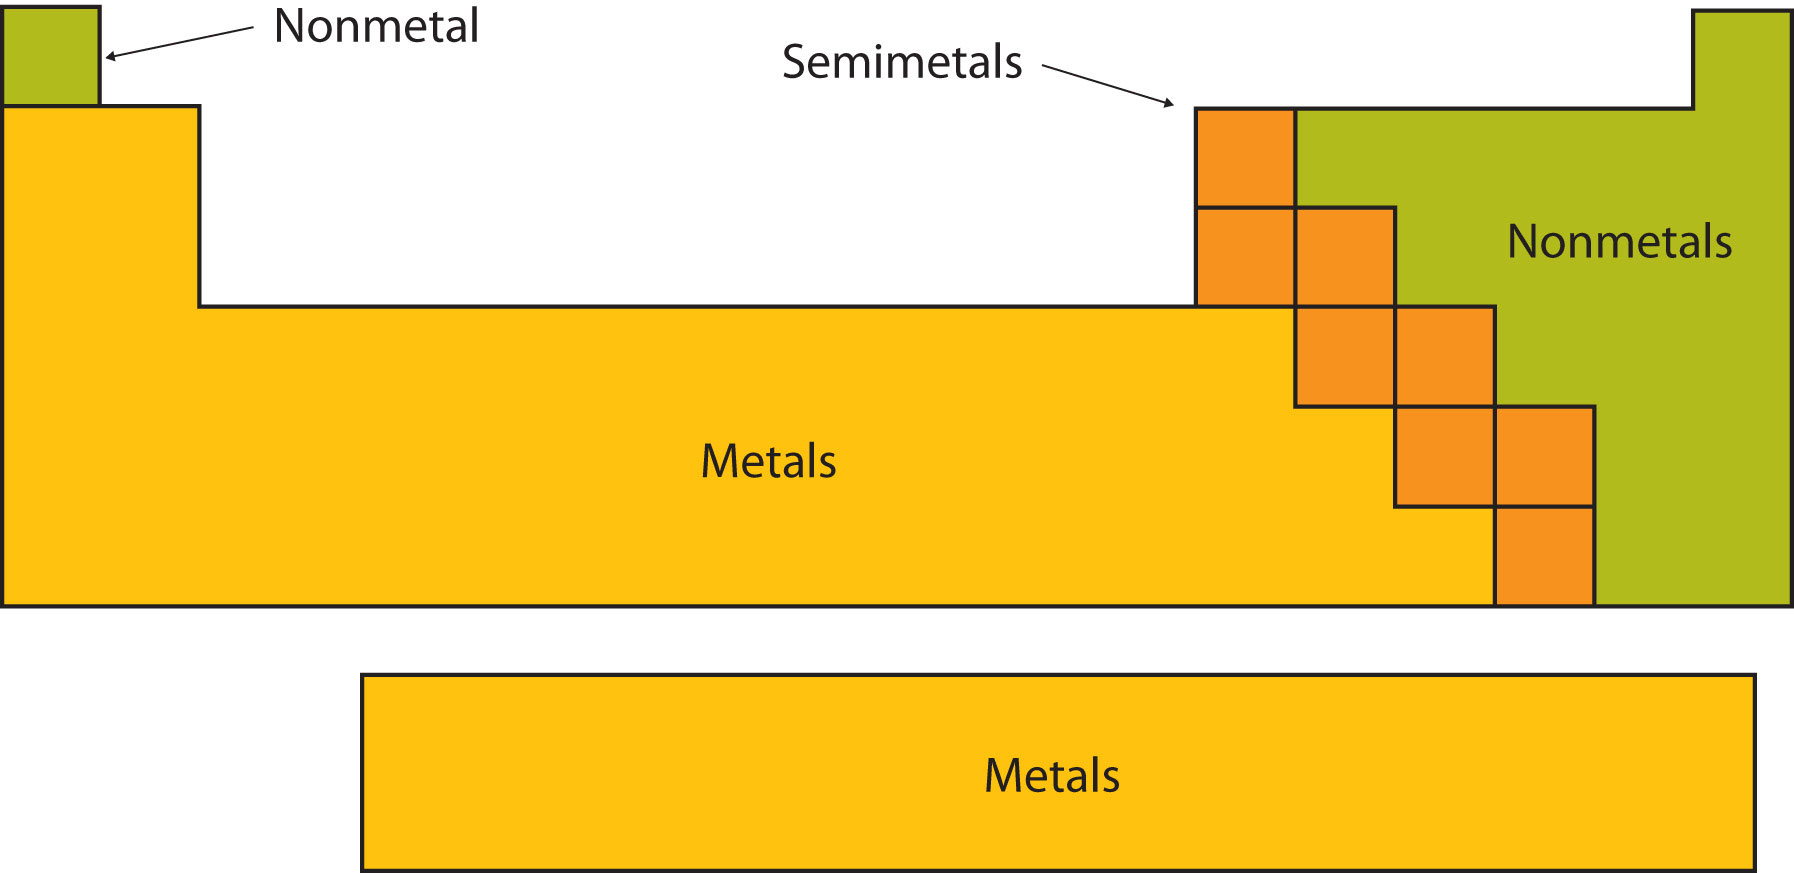 Introductory chemistry 101 flatworld types of elements elements are either metals nonmetals gamestrikefo Gallery